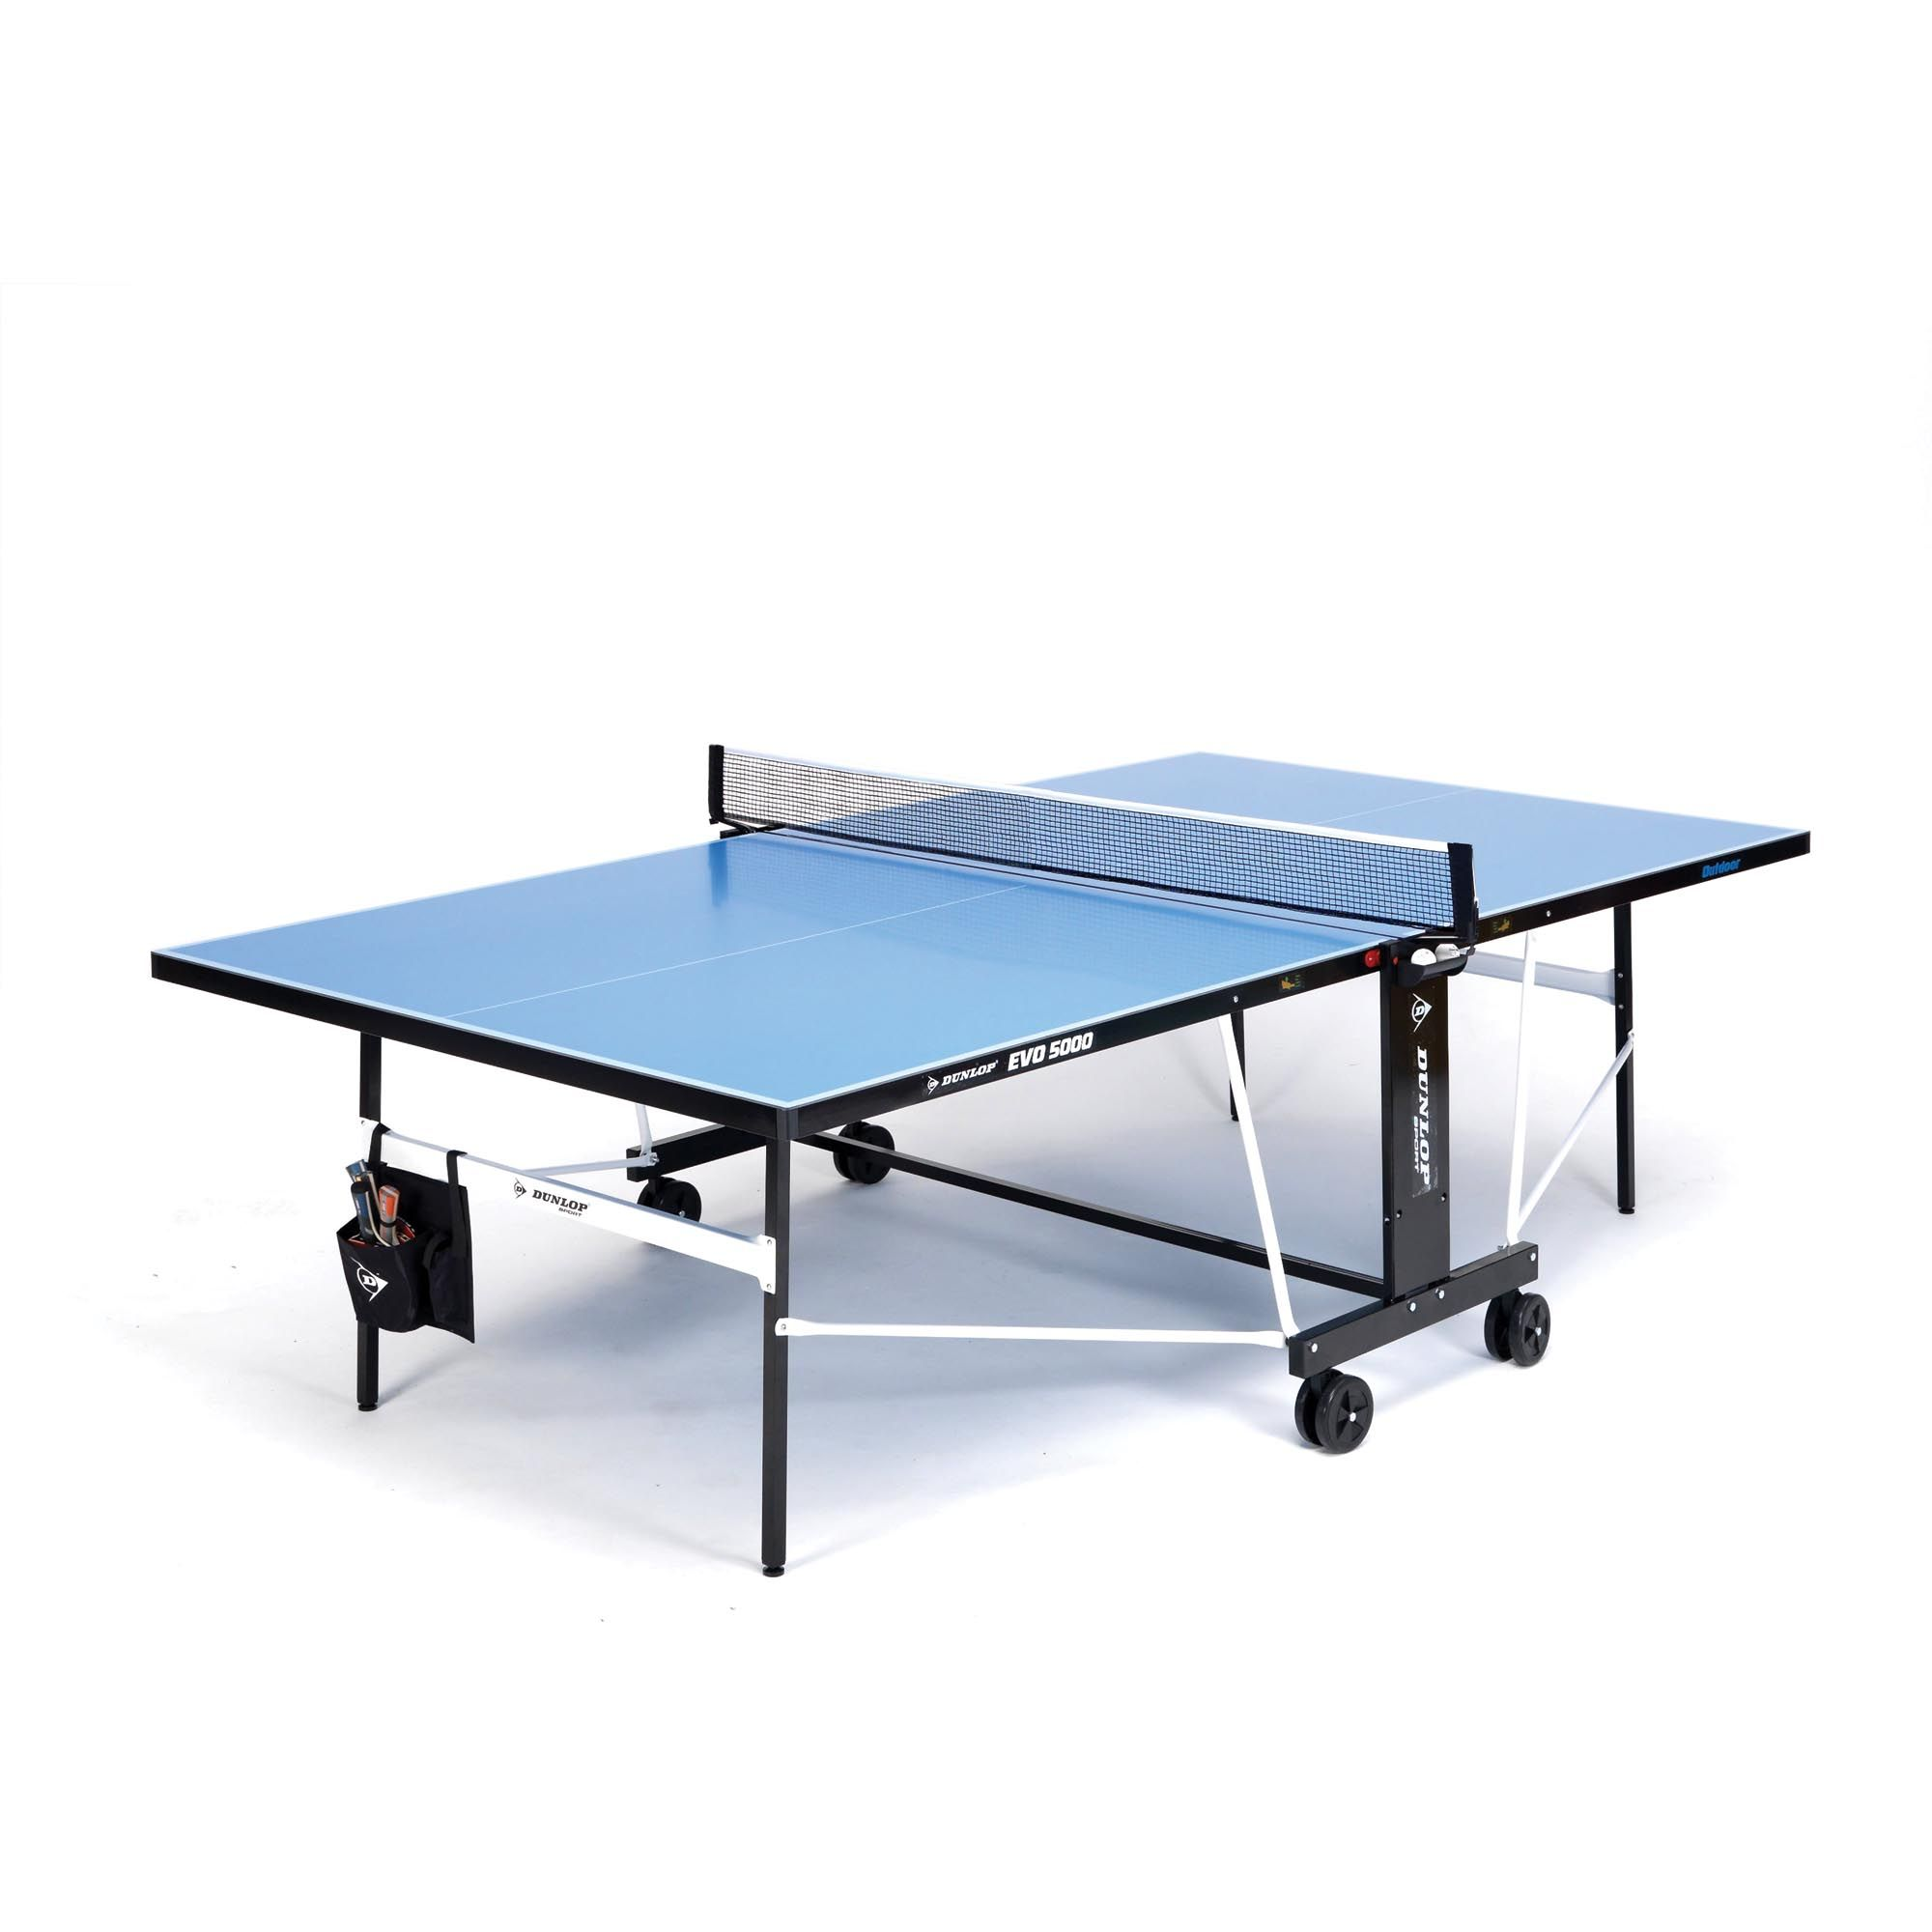 Dunlop evo 5000 outdoor table tennis table - Weatherproof table tennis table ...